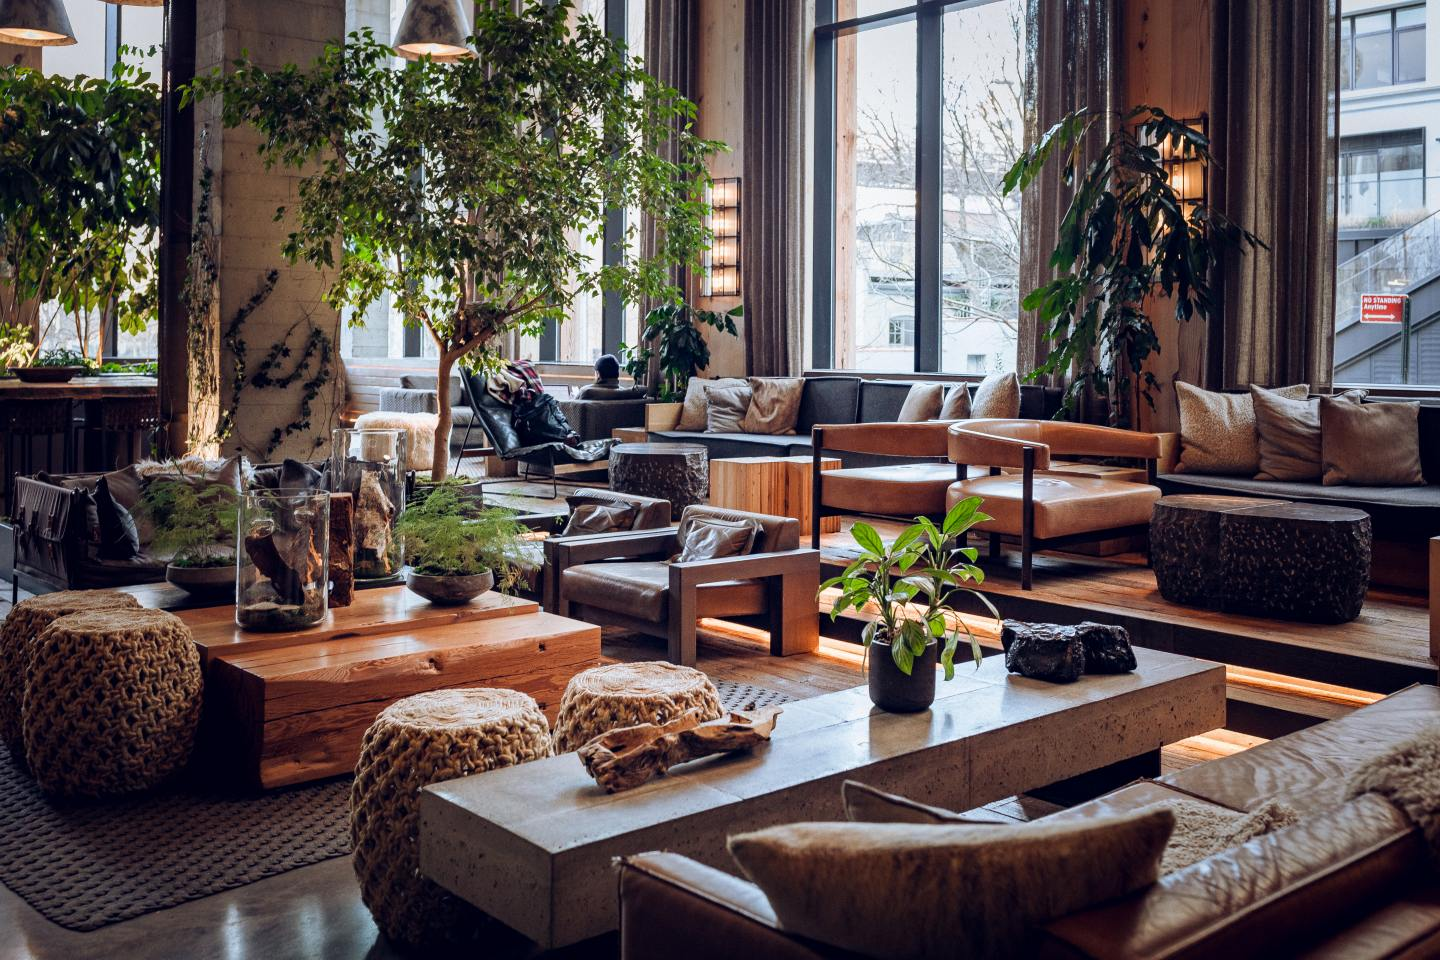 Hotel lobby with seats and plants